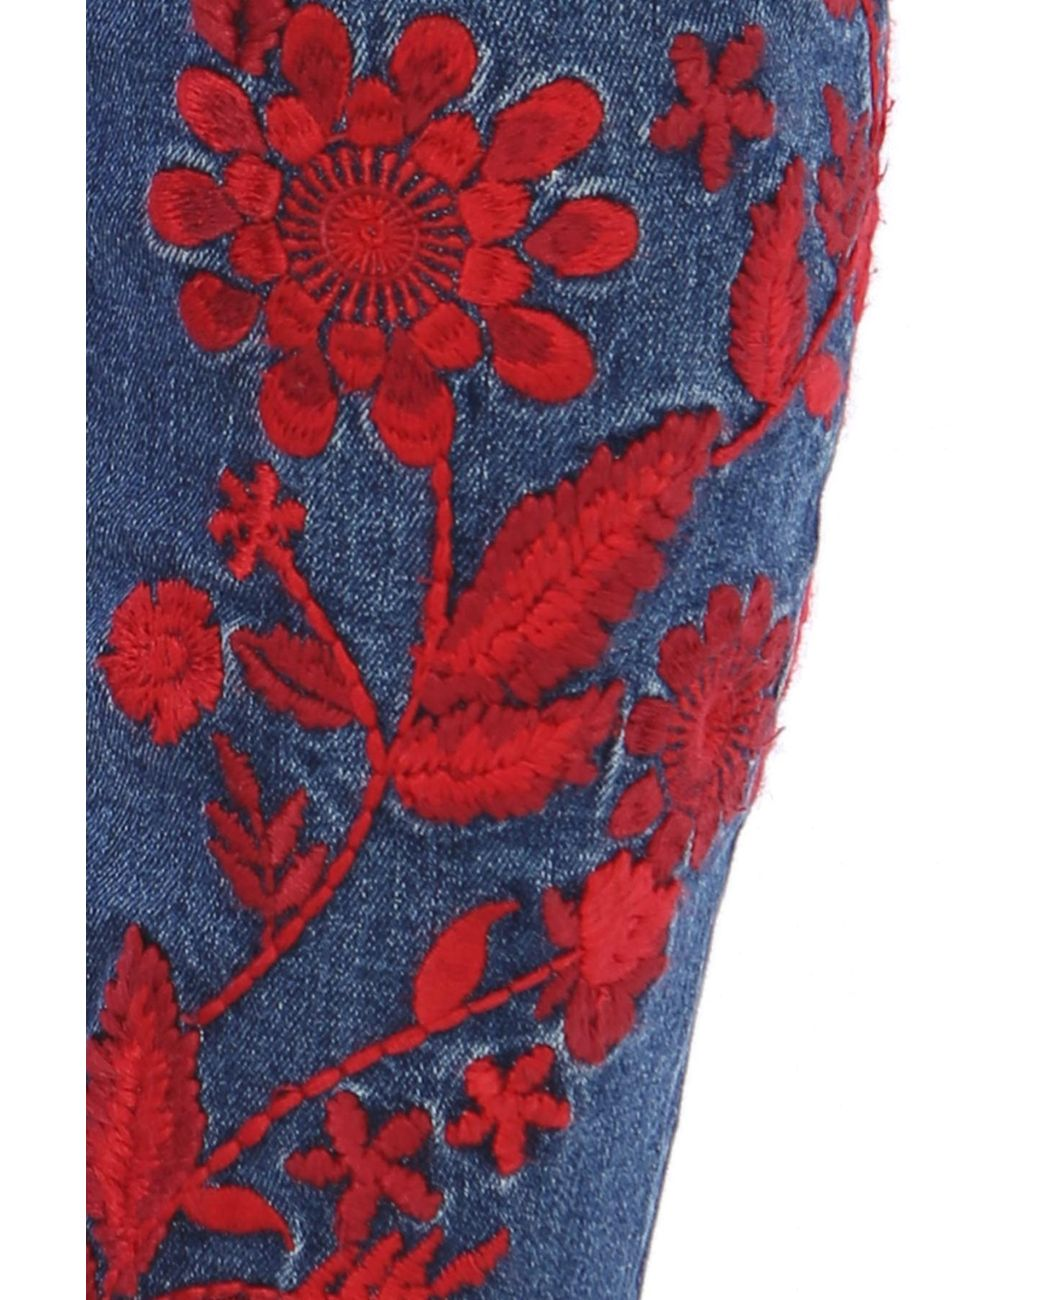 Kut from the kloth 14W straight leg blue jeans flowers embroidered